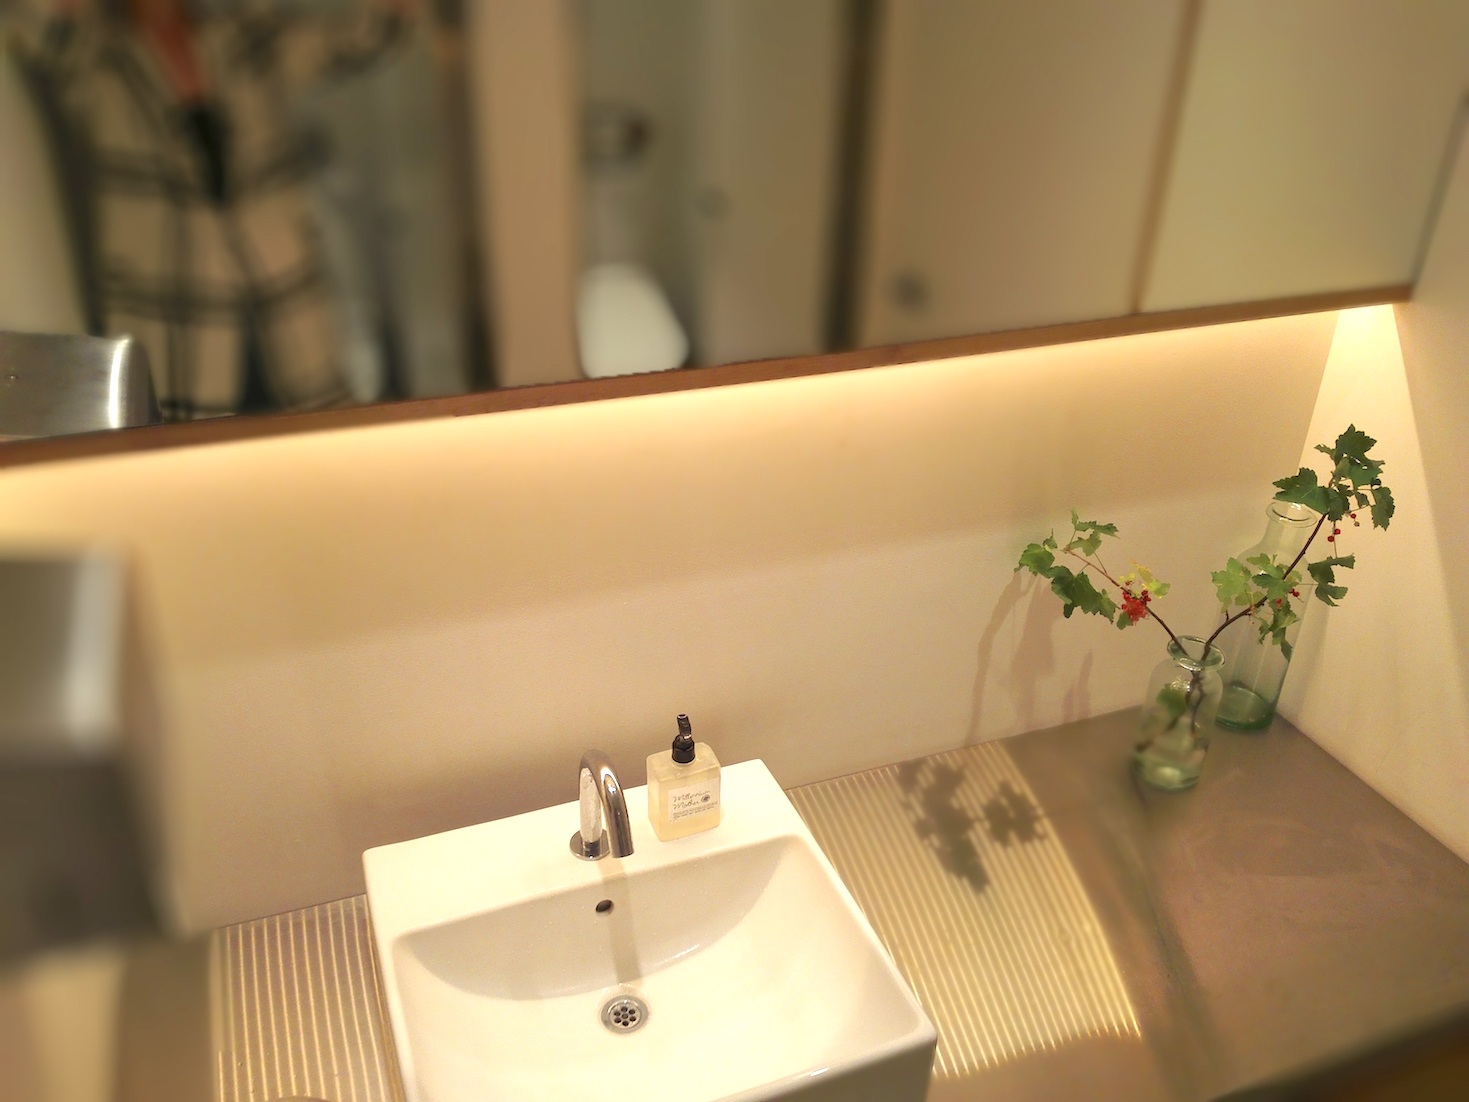 Lovely sink in the bathroom in 100 Spoons baby-friendly restaurant in Futako Tamagawa, Tokyo